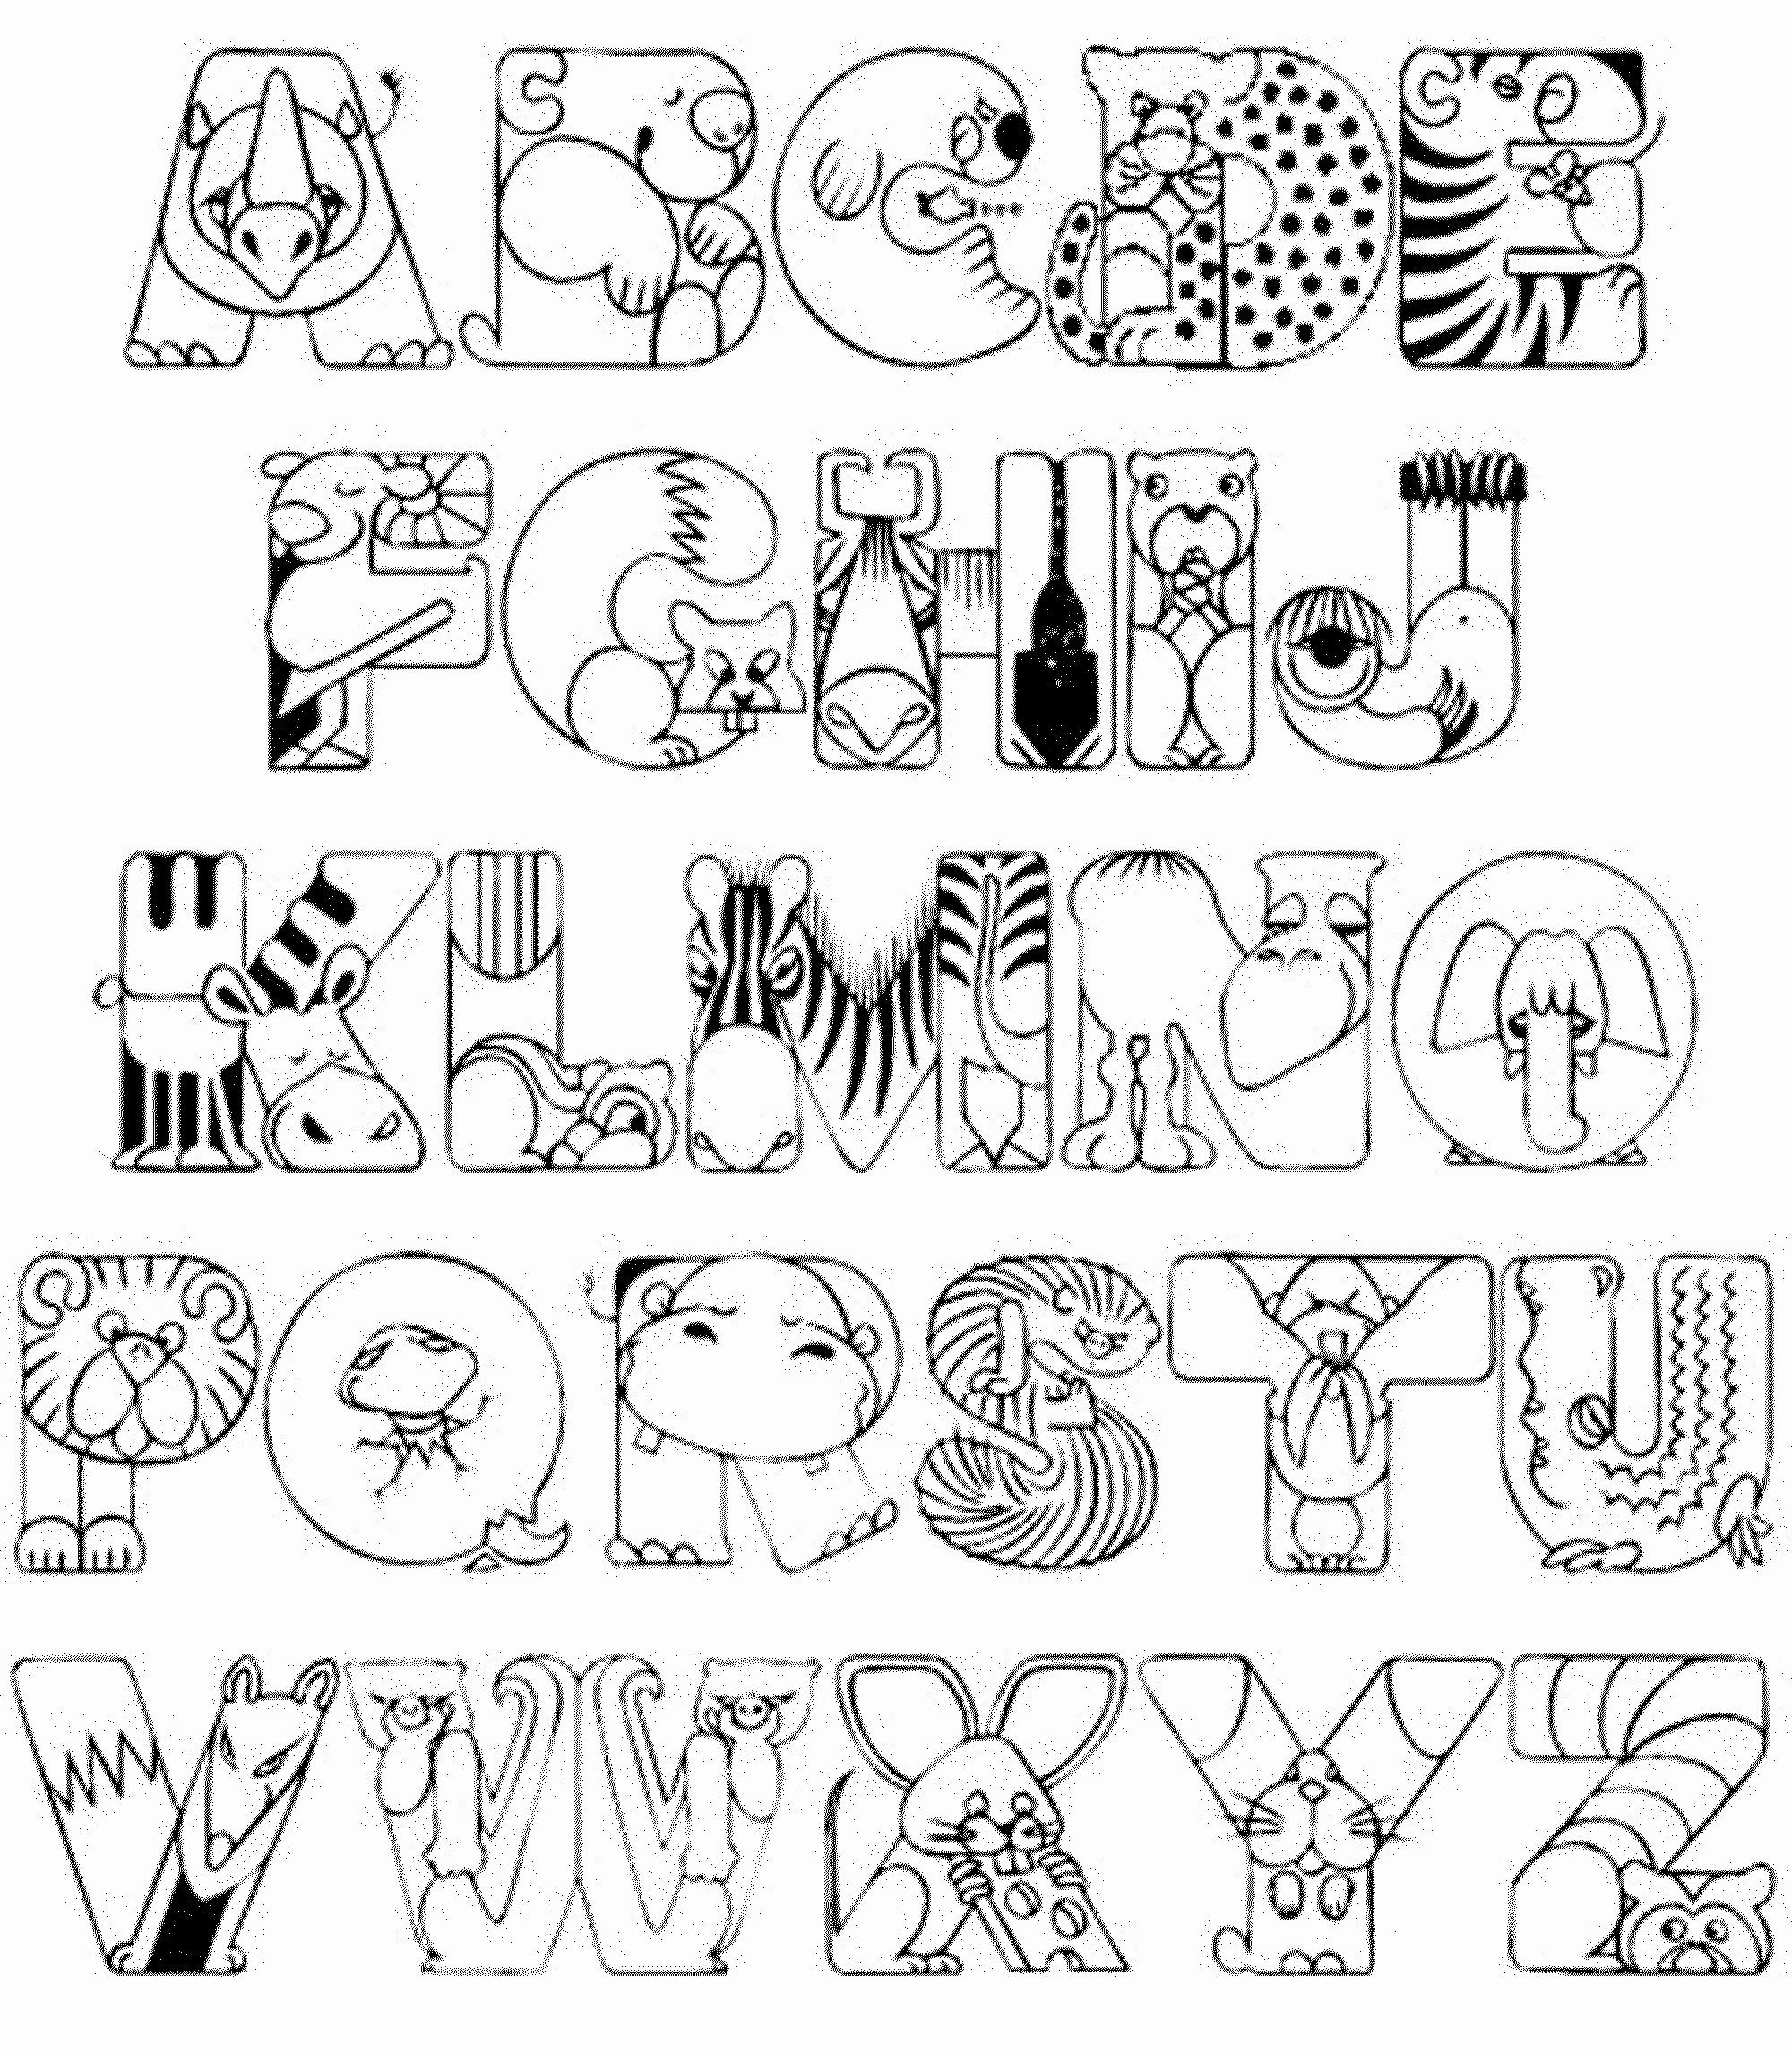 Alphabet Coloring Book Printable Pdf Free Luxury Alphabet Coloring